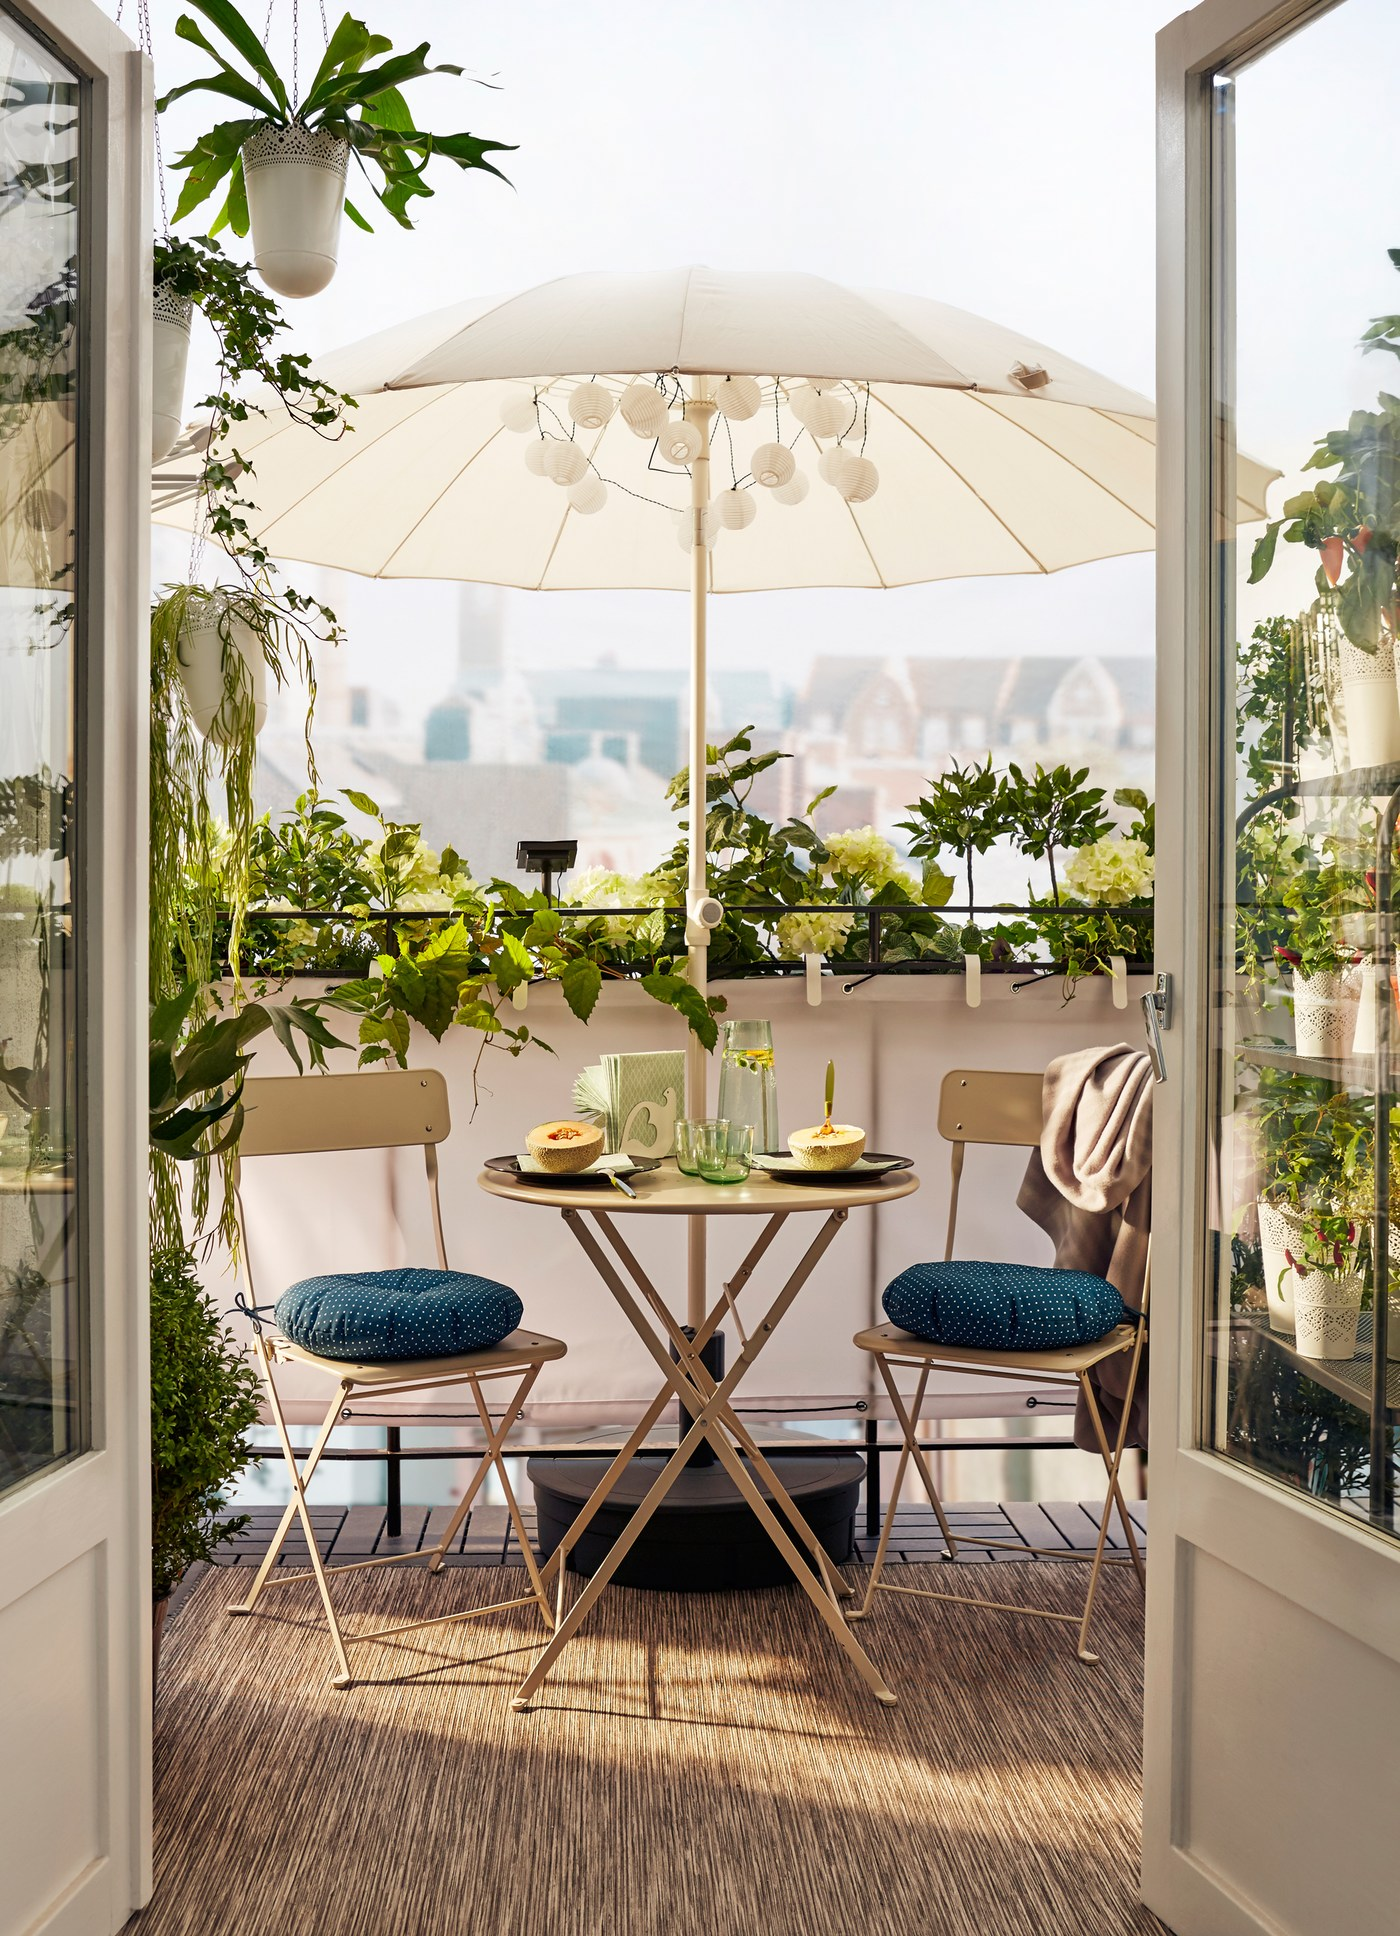 Ikea Small Balcony Decorating Ideas: Simple Elegance For Small Balconies